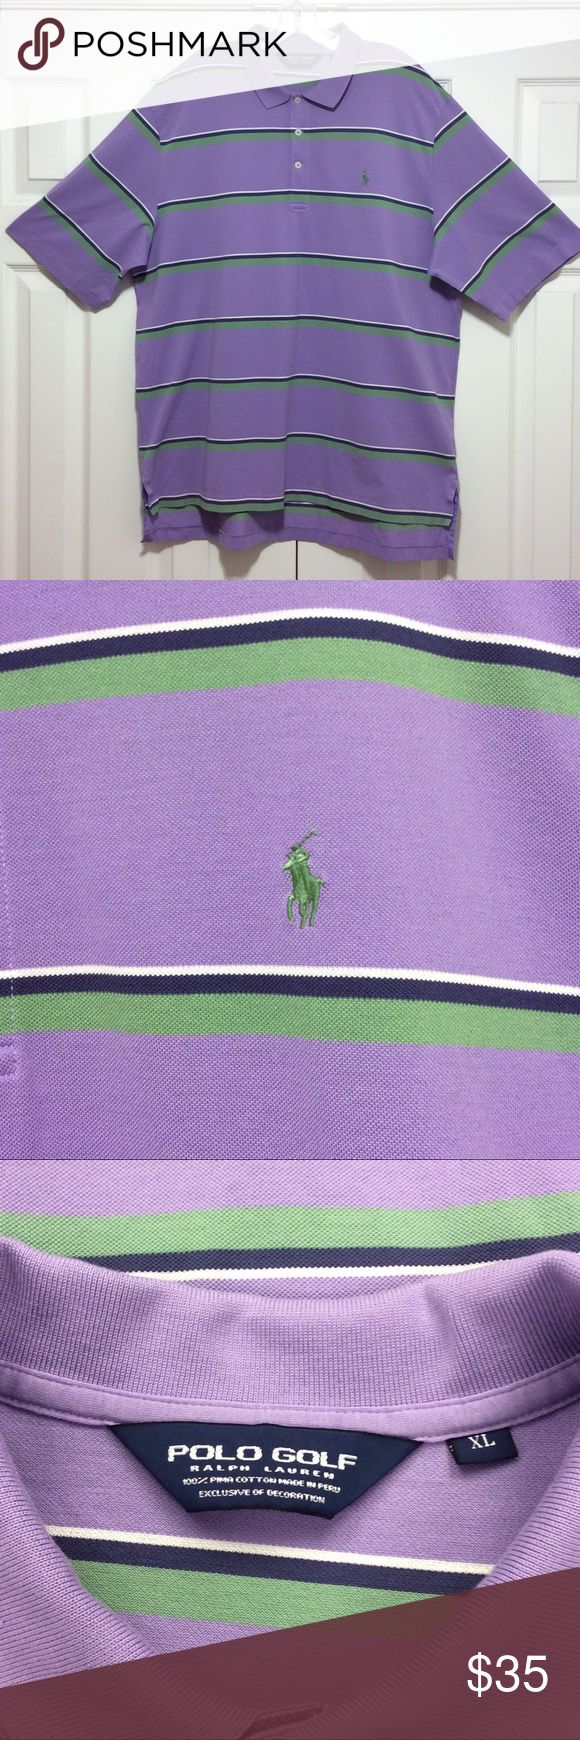 Polo by Ralph Lauren NWOT Golf shirt size XL Polo by Ralph Lauren Golf shirt size XL made of 100% Pima cotton. Shirt is purple in color with green, blue and white combined striped NWOT questions??? Please ask Polo by Ralph Lauren Shirts Polos